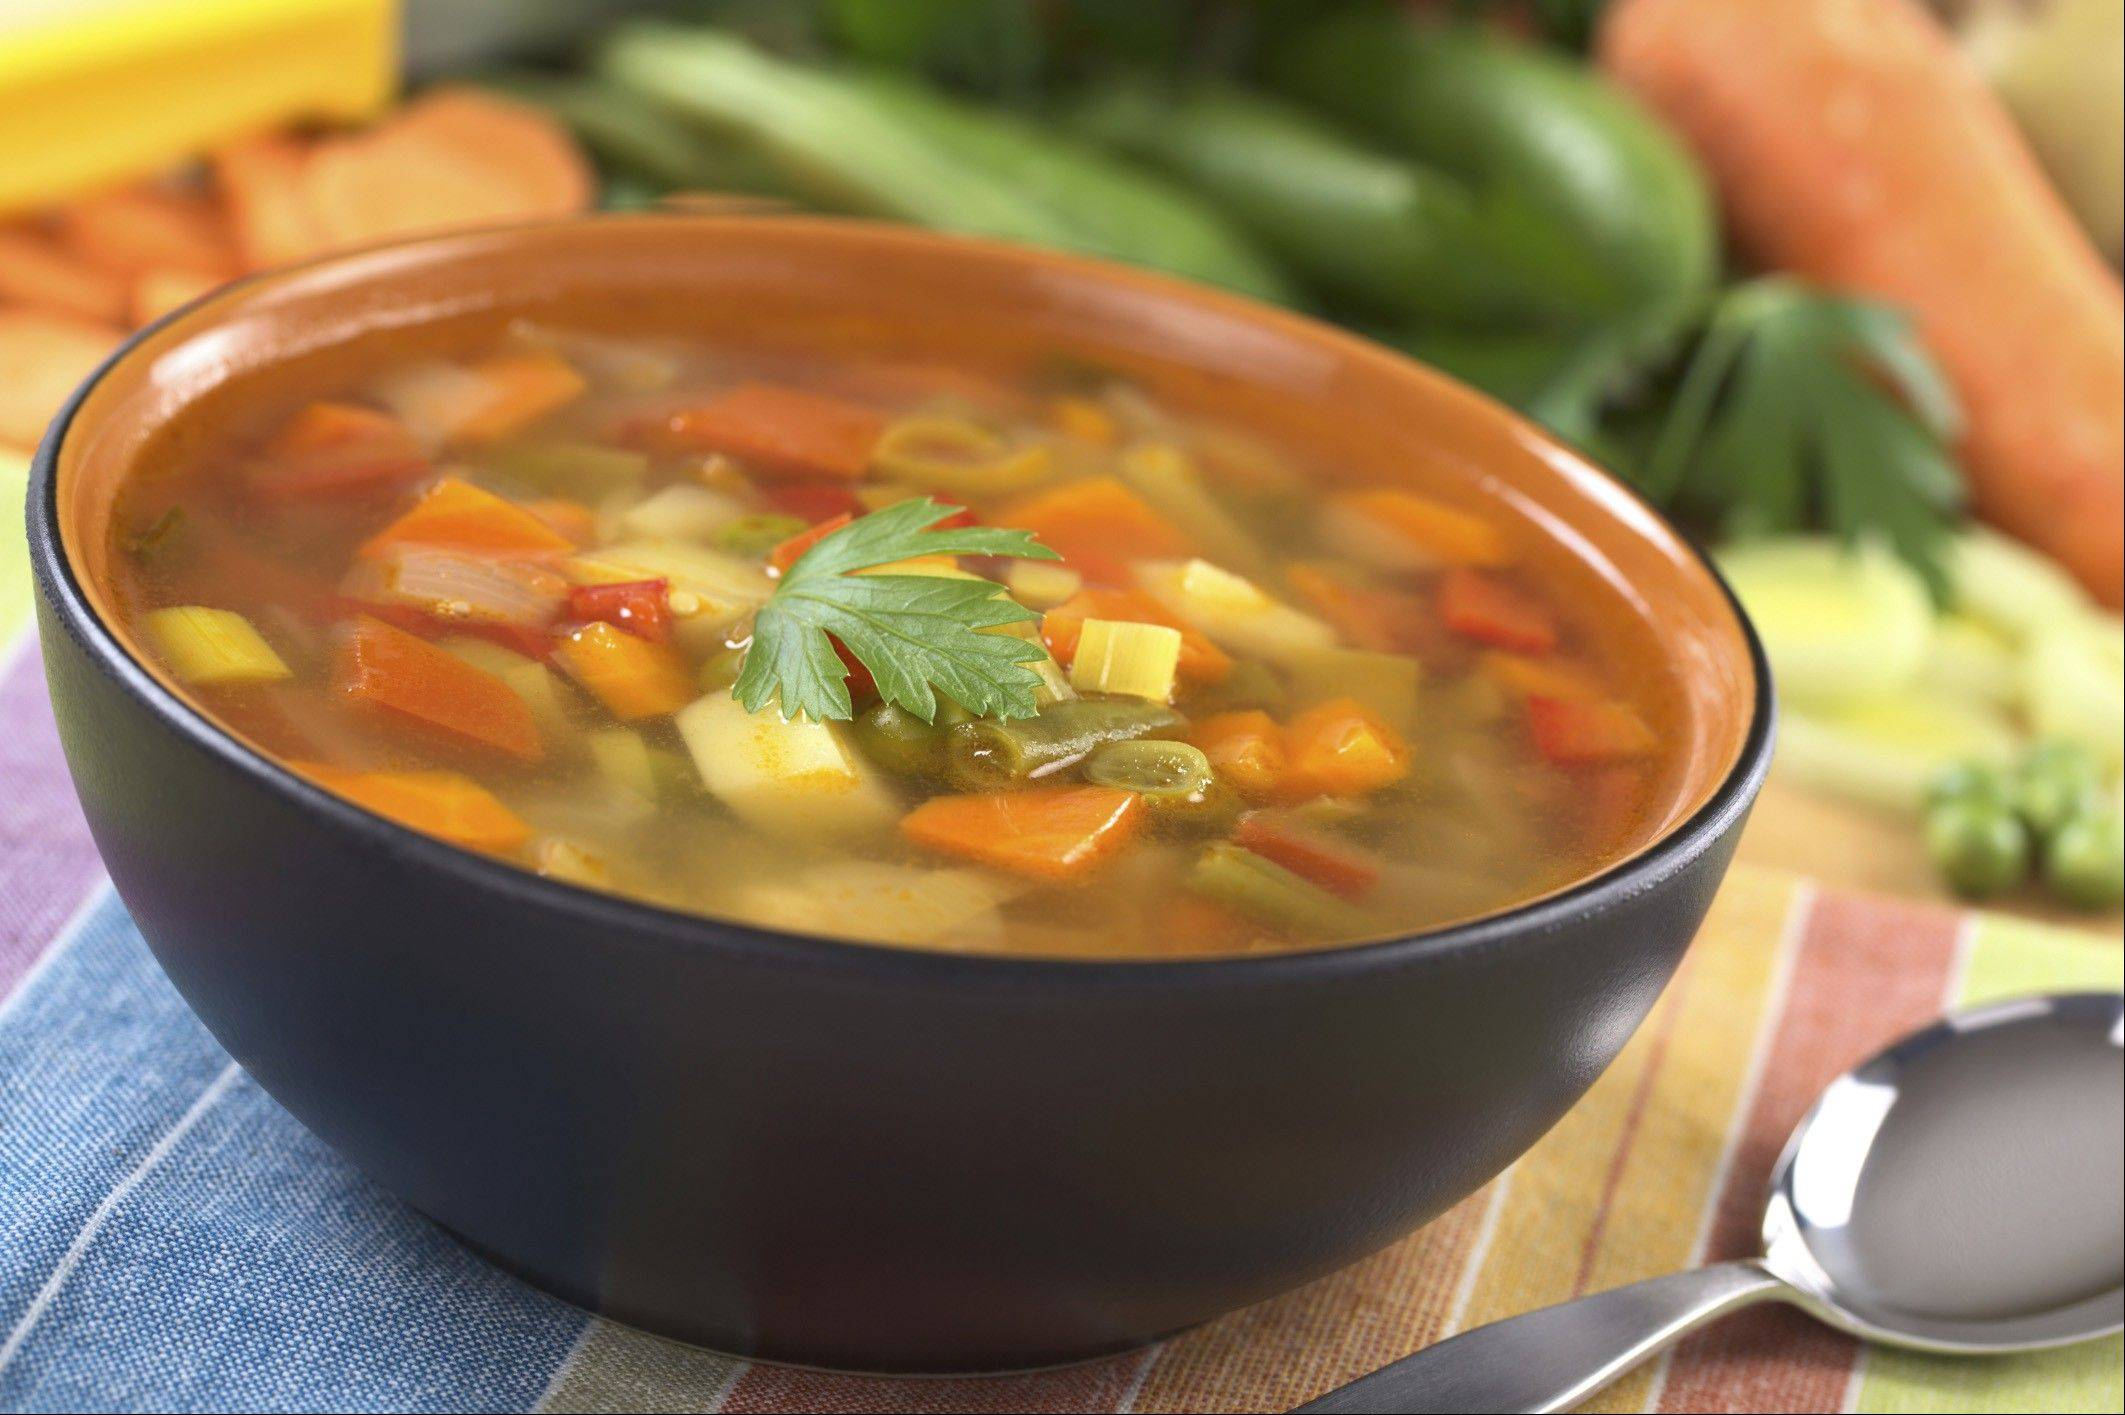 A bowl of soup before a meal will help you feel full and eat less.